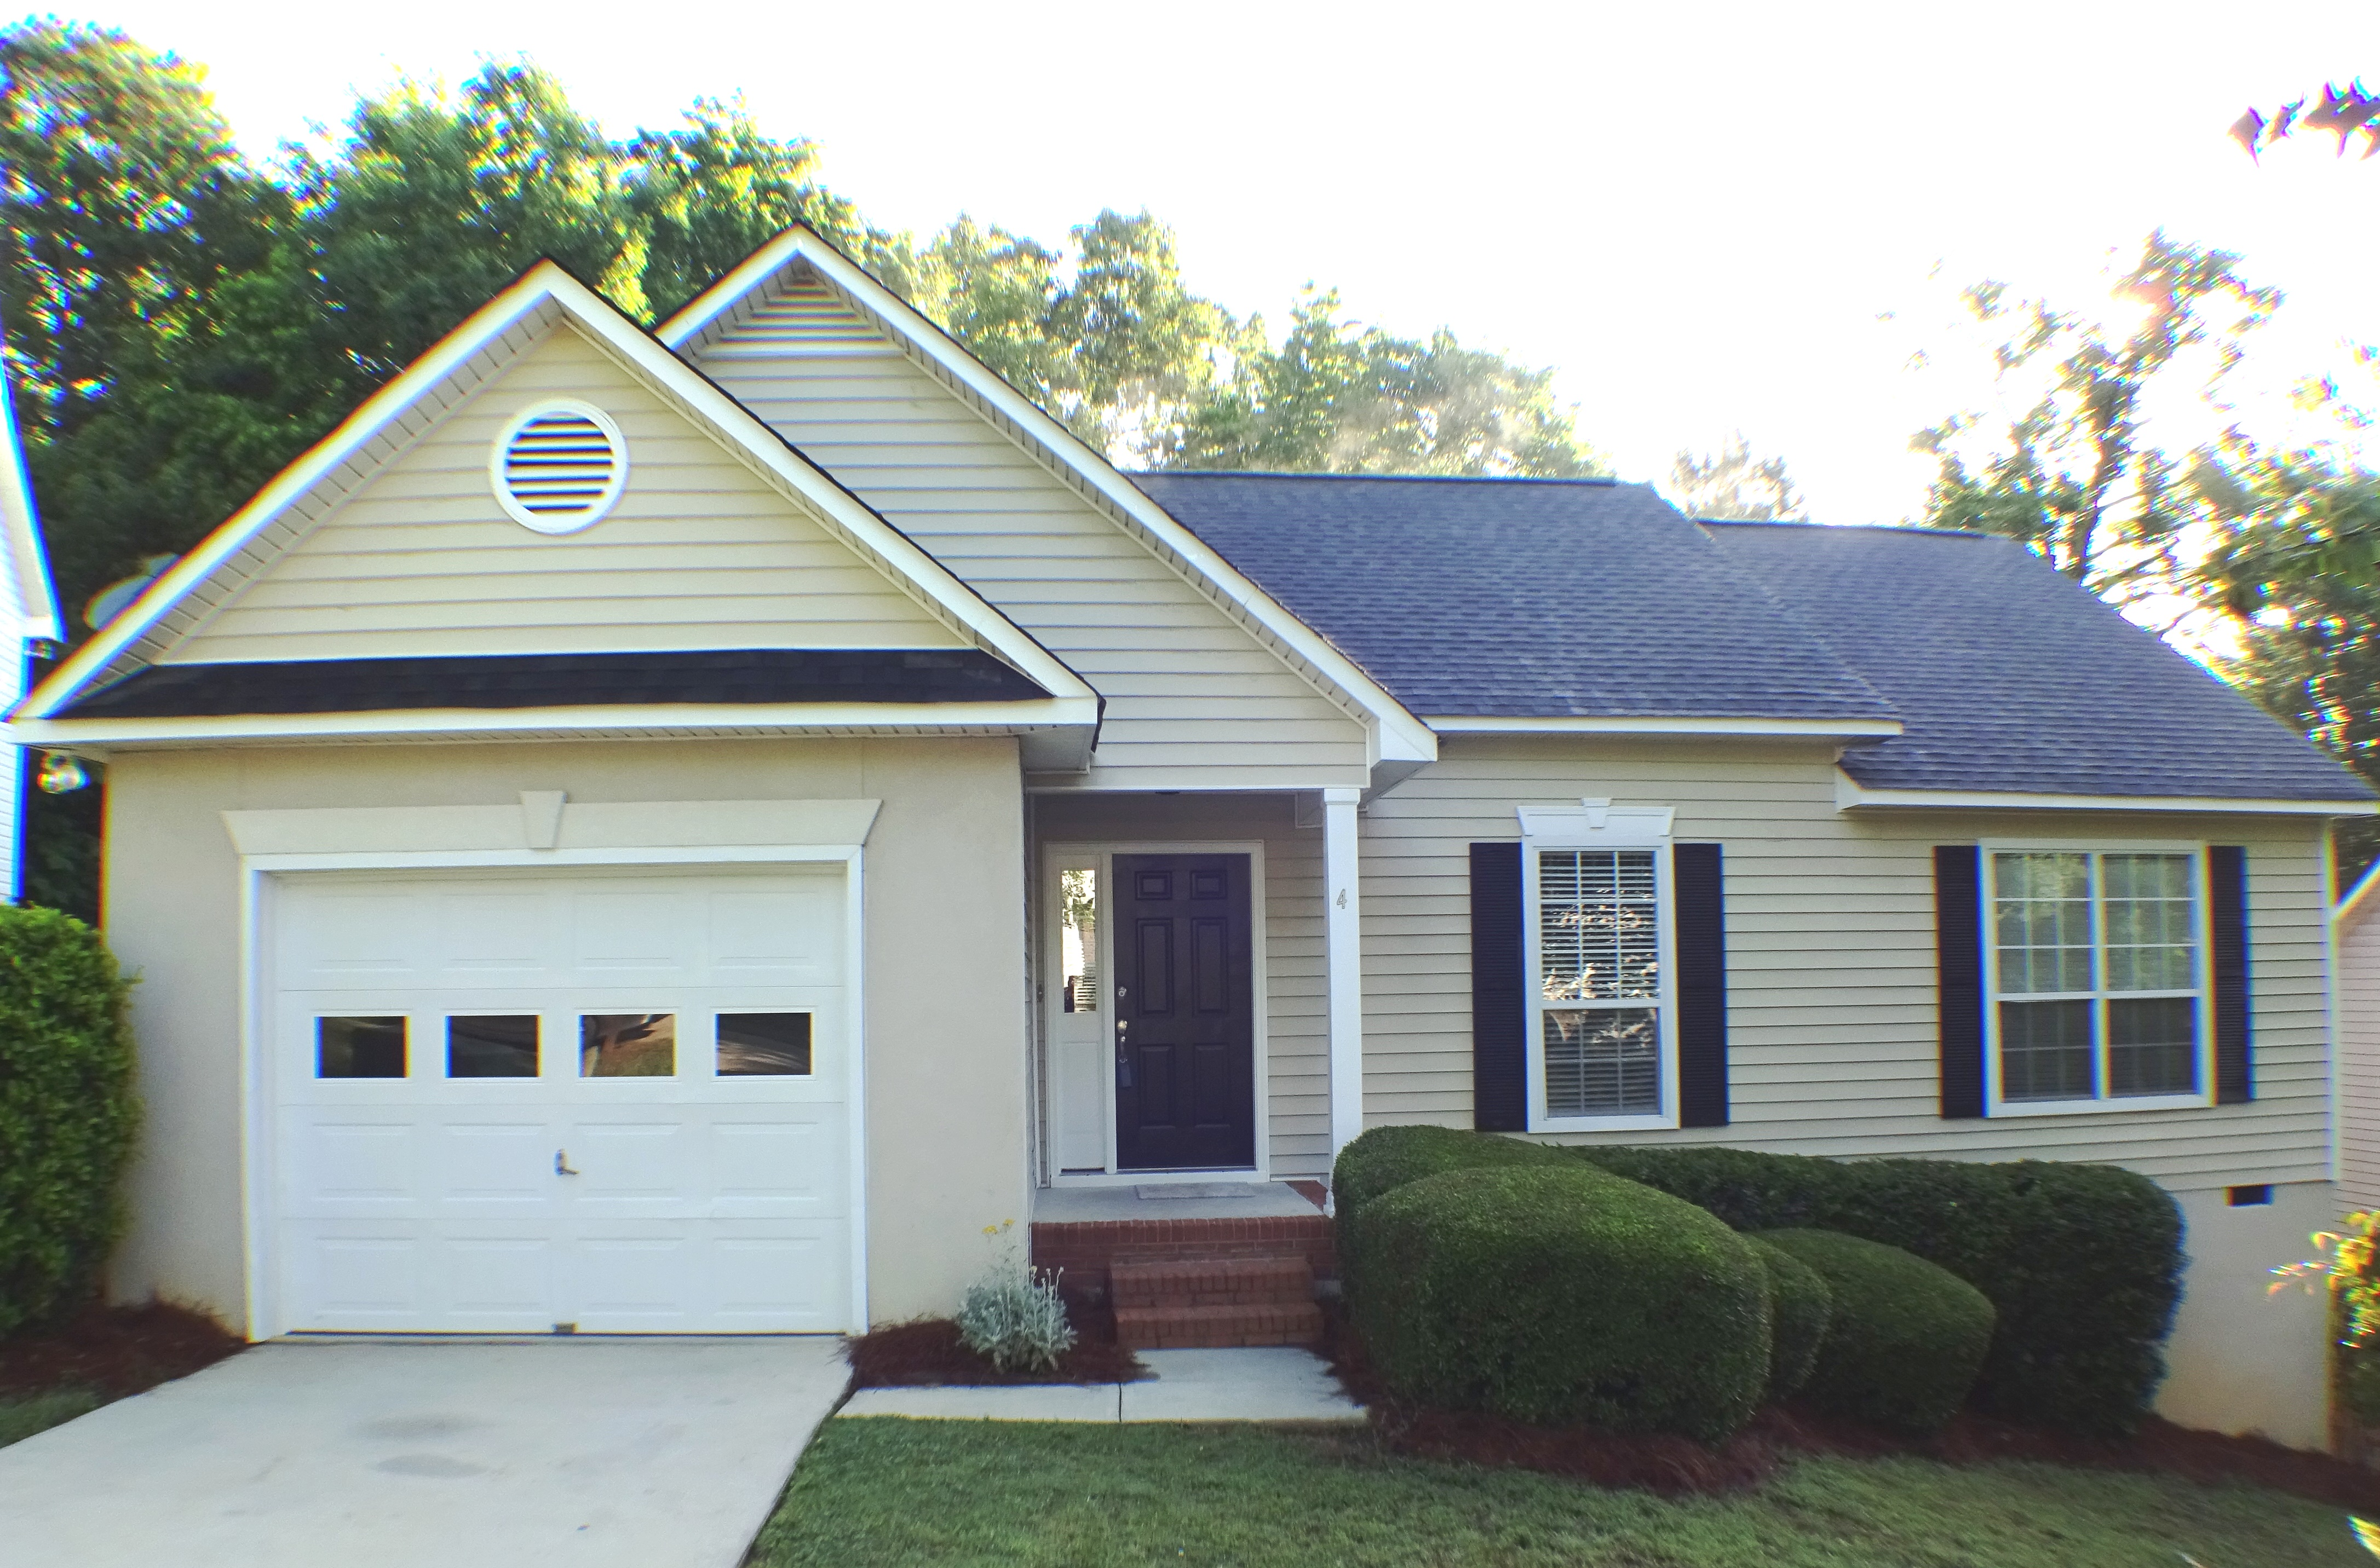 4 Gidding Ct, Irmo, SC 29063